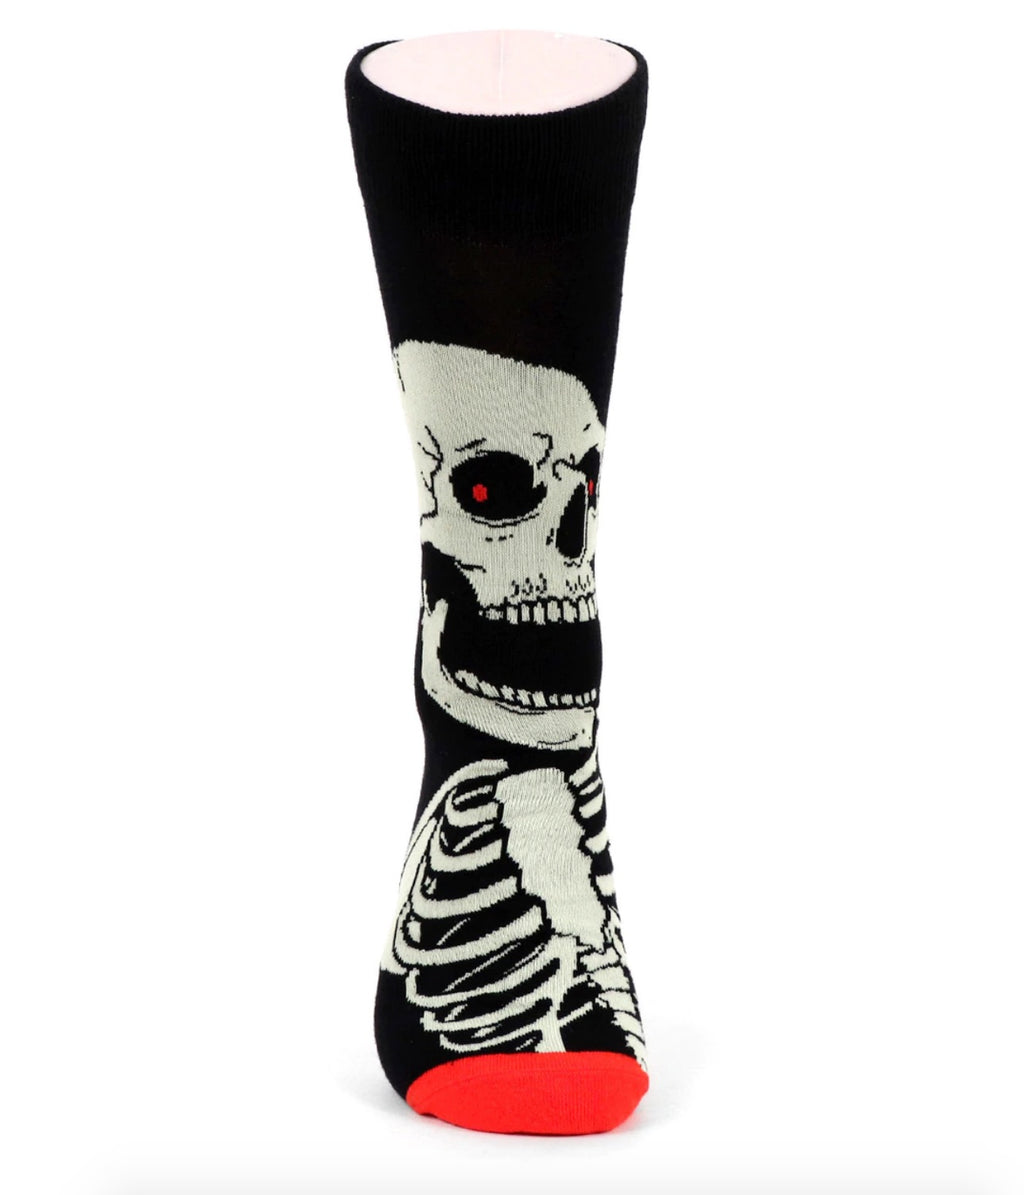 Urban-Peacock Men's Halloween Novelty Socks - Skeleton